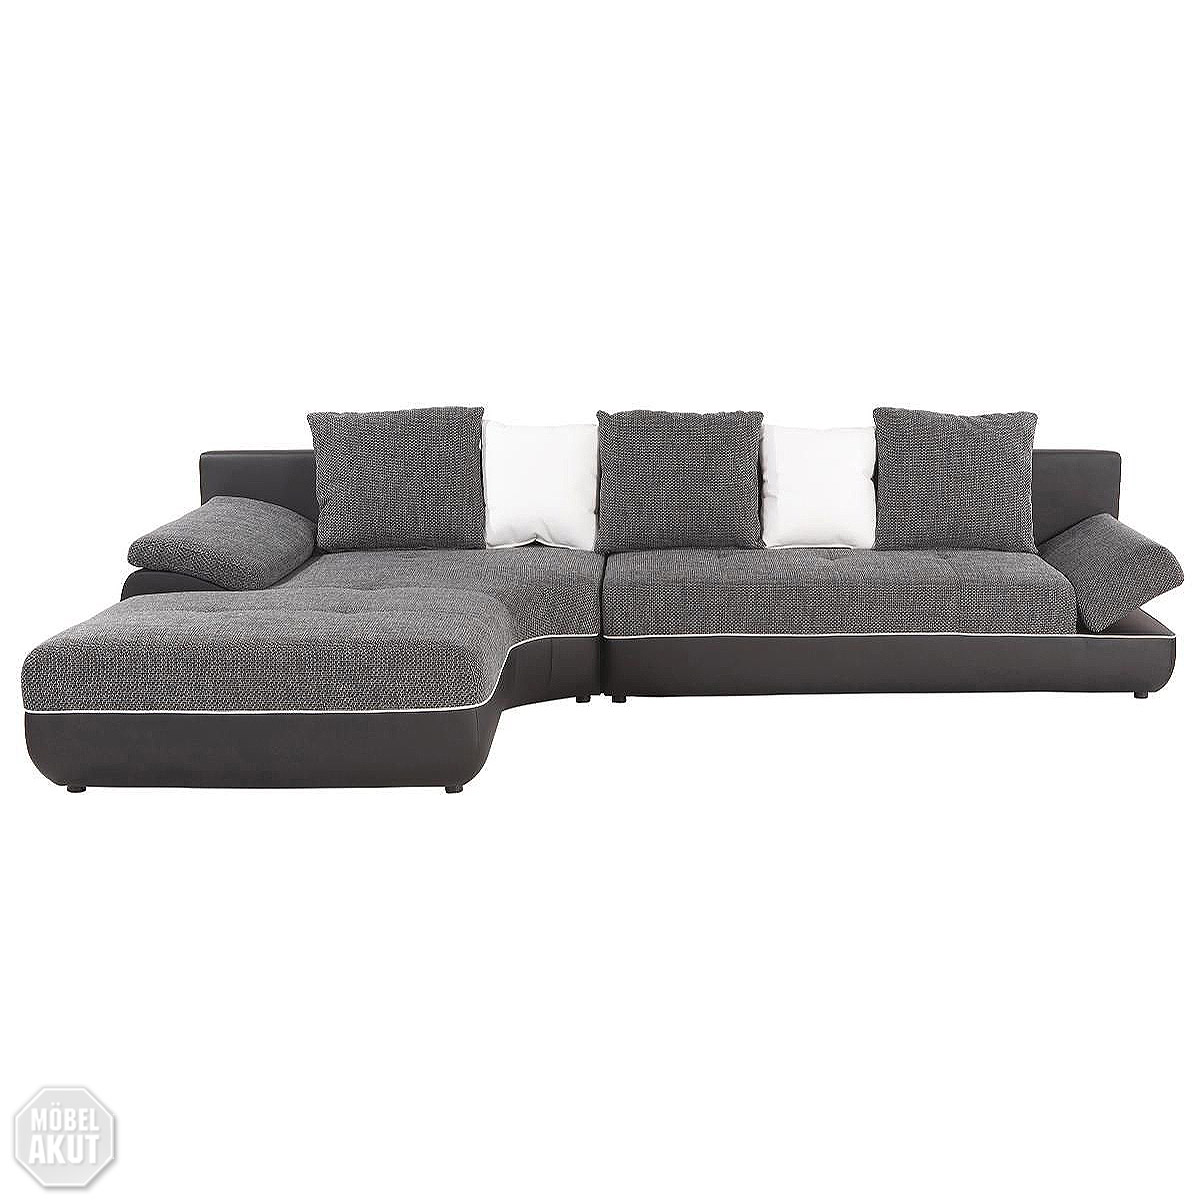 Big Sofa Kolonialstil Luxury Big Sofa Sissi Kolonialstil Xxl Mega Big Sofa Eck Eck Sofa 38490 Luxury Big Couch 14 Sofa Room